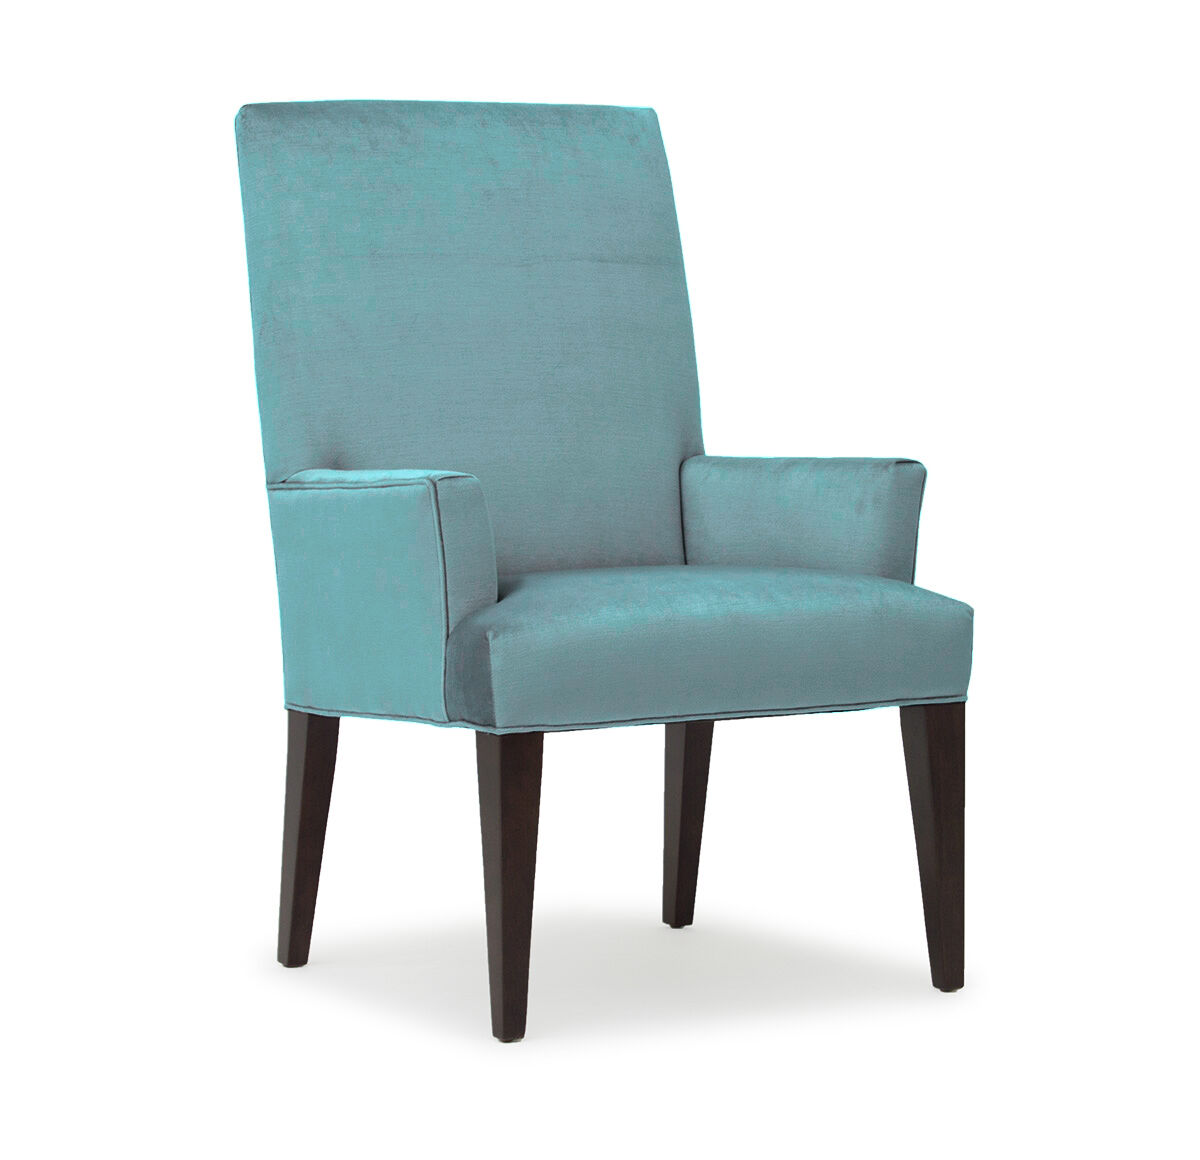 Teal Leather Chair Teal Arm Chair Chairs Model